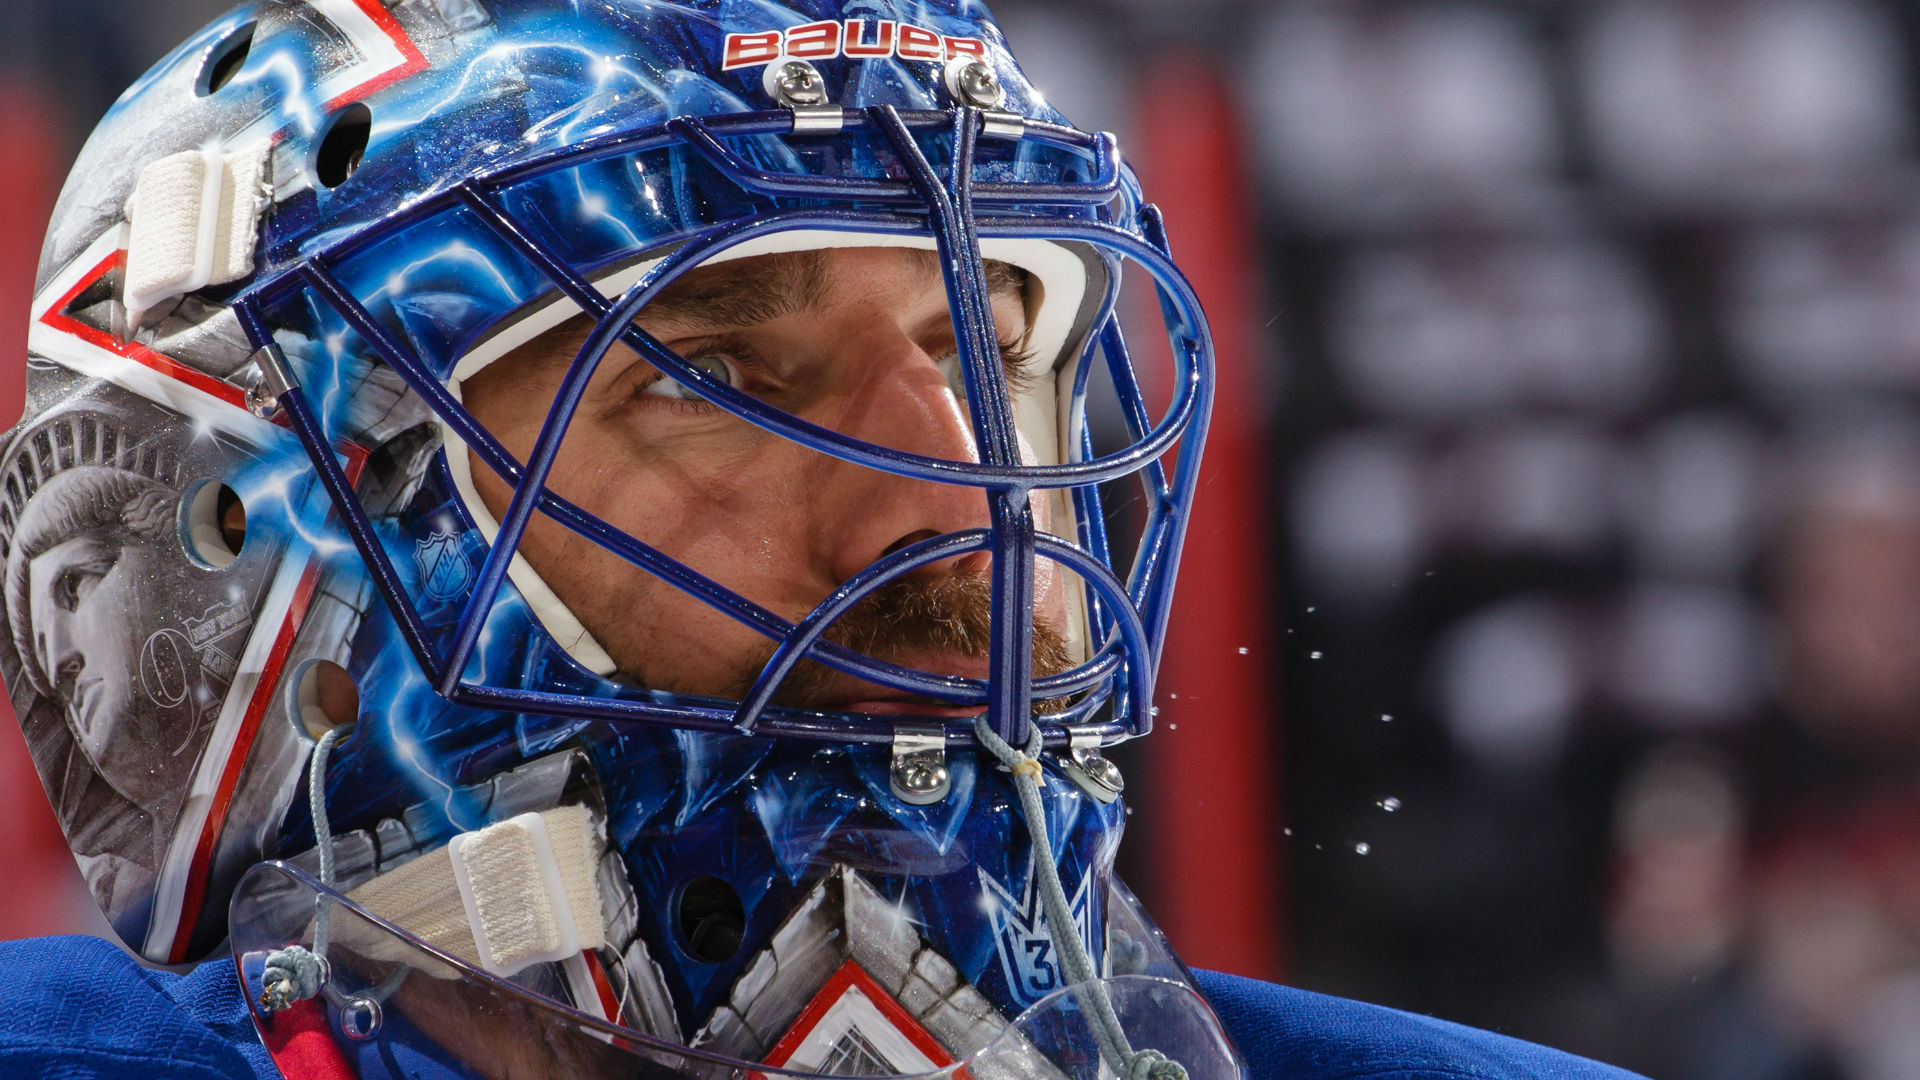 Henrik Lundqvist heads to Capitals: Why the signing works and why it doesn't 1